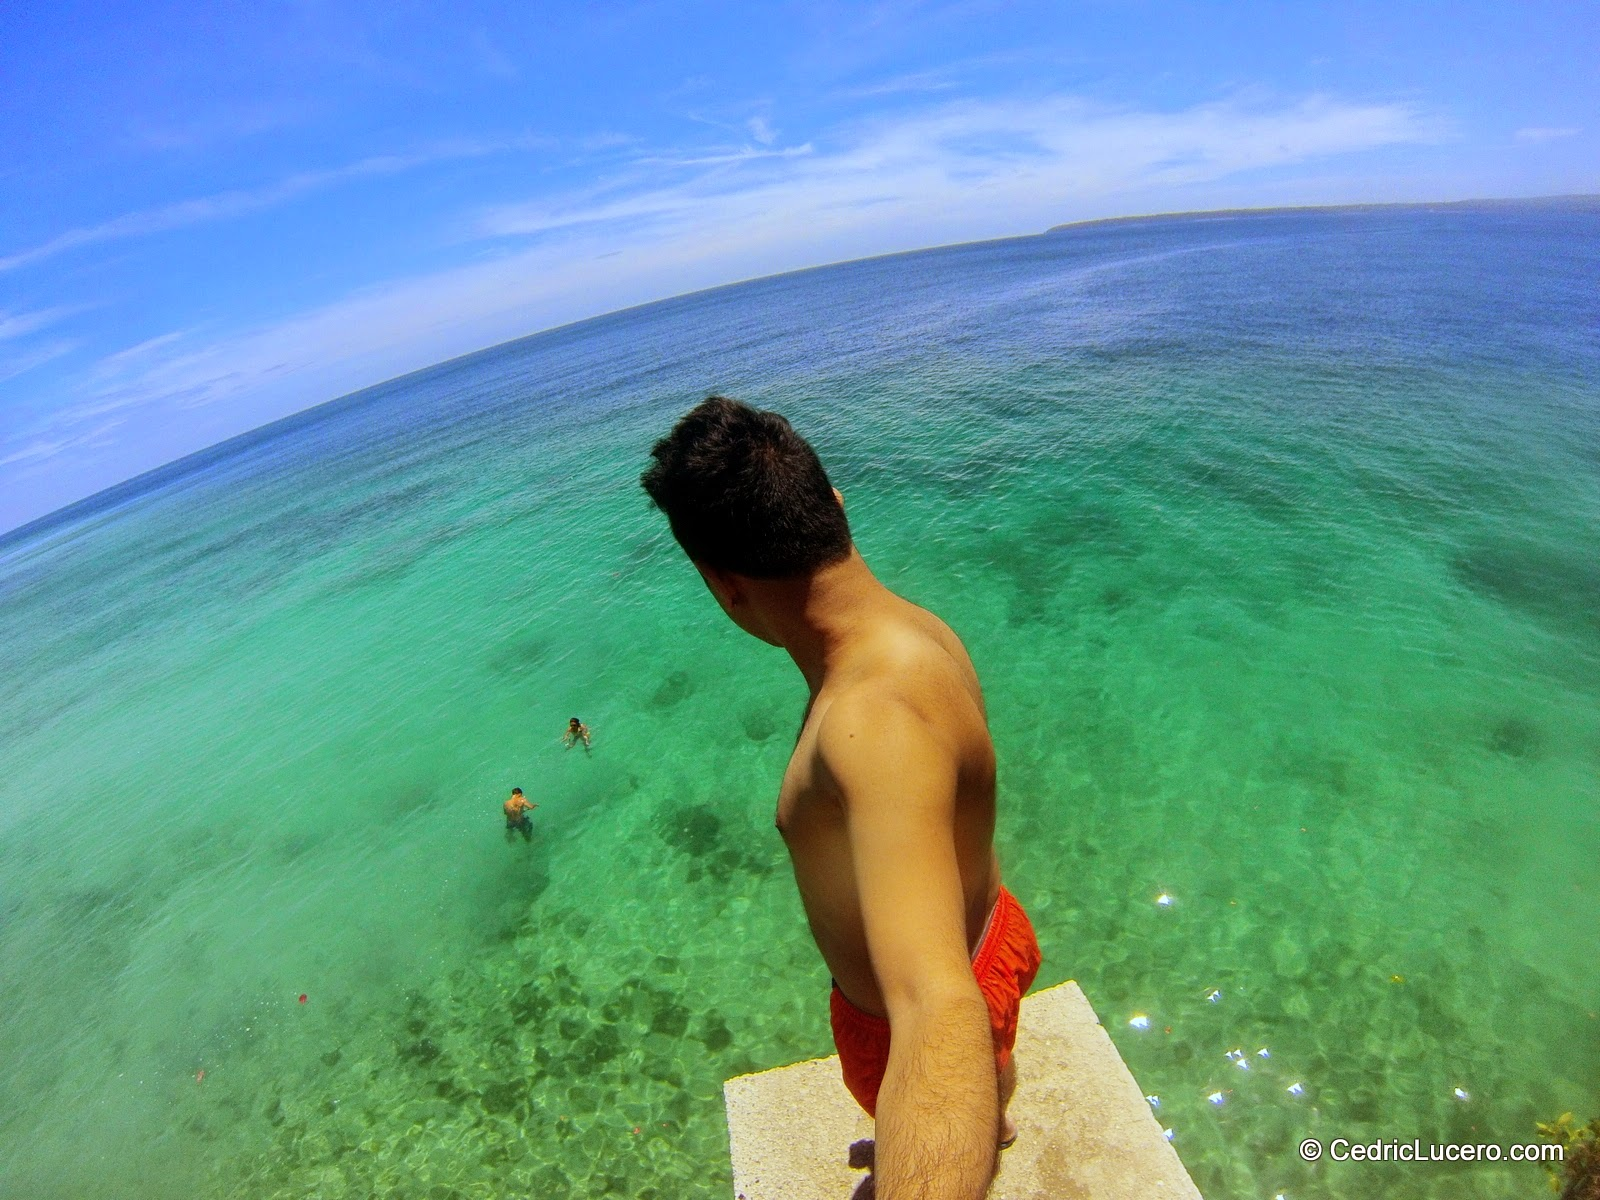 20 Feet Cliff Jump in Siquijor - Cedric Lucero